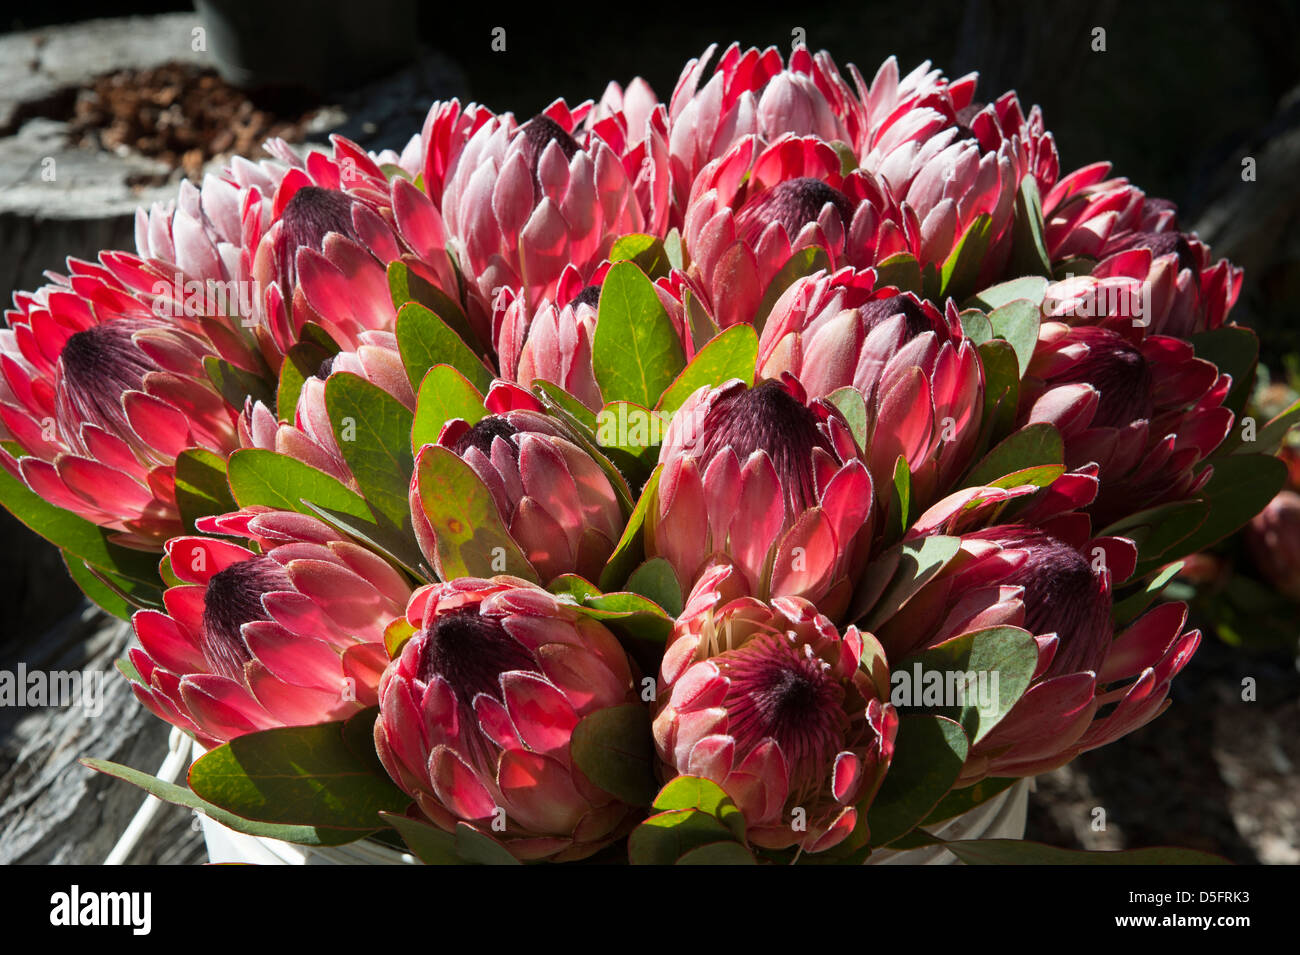 the south african national flower stock photos the south african